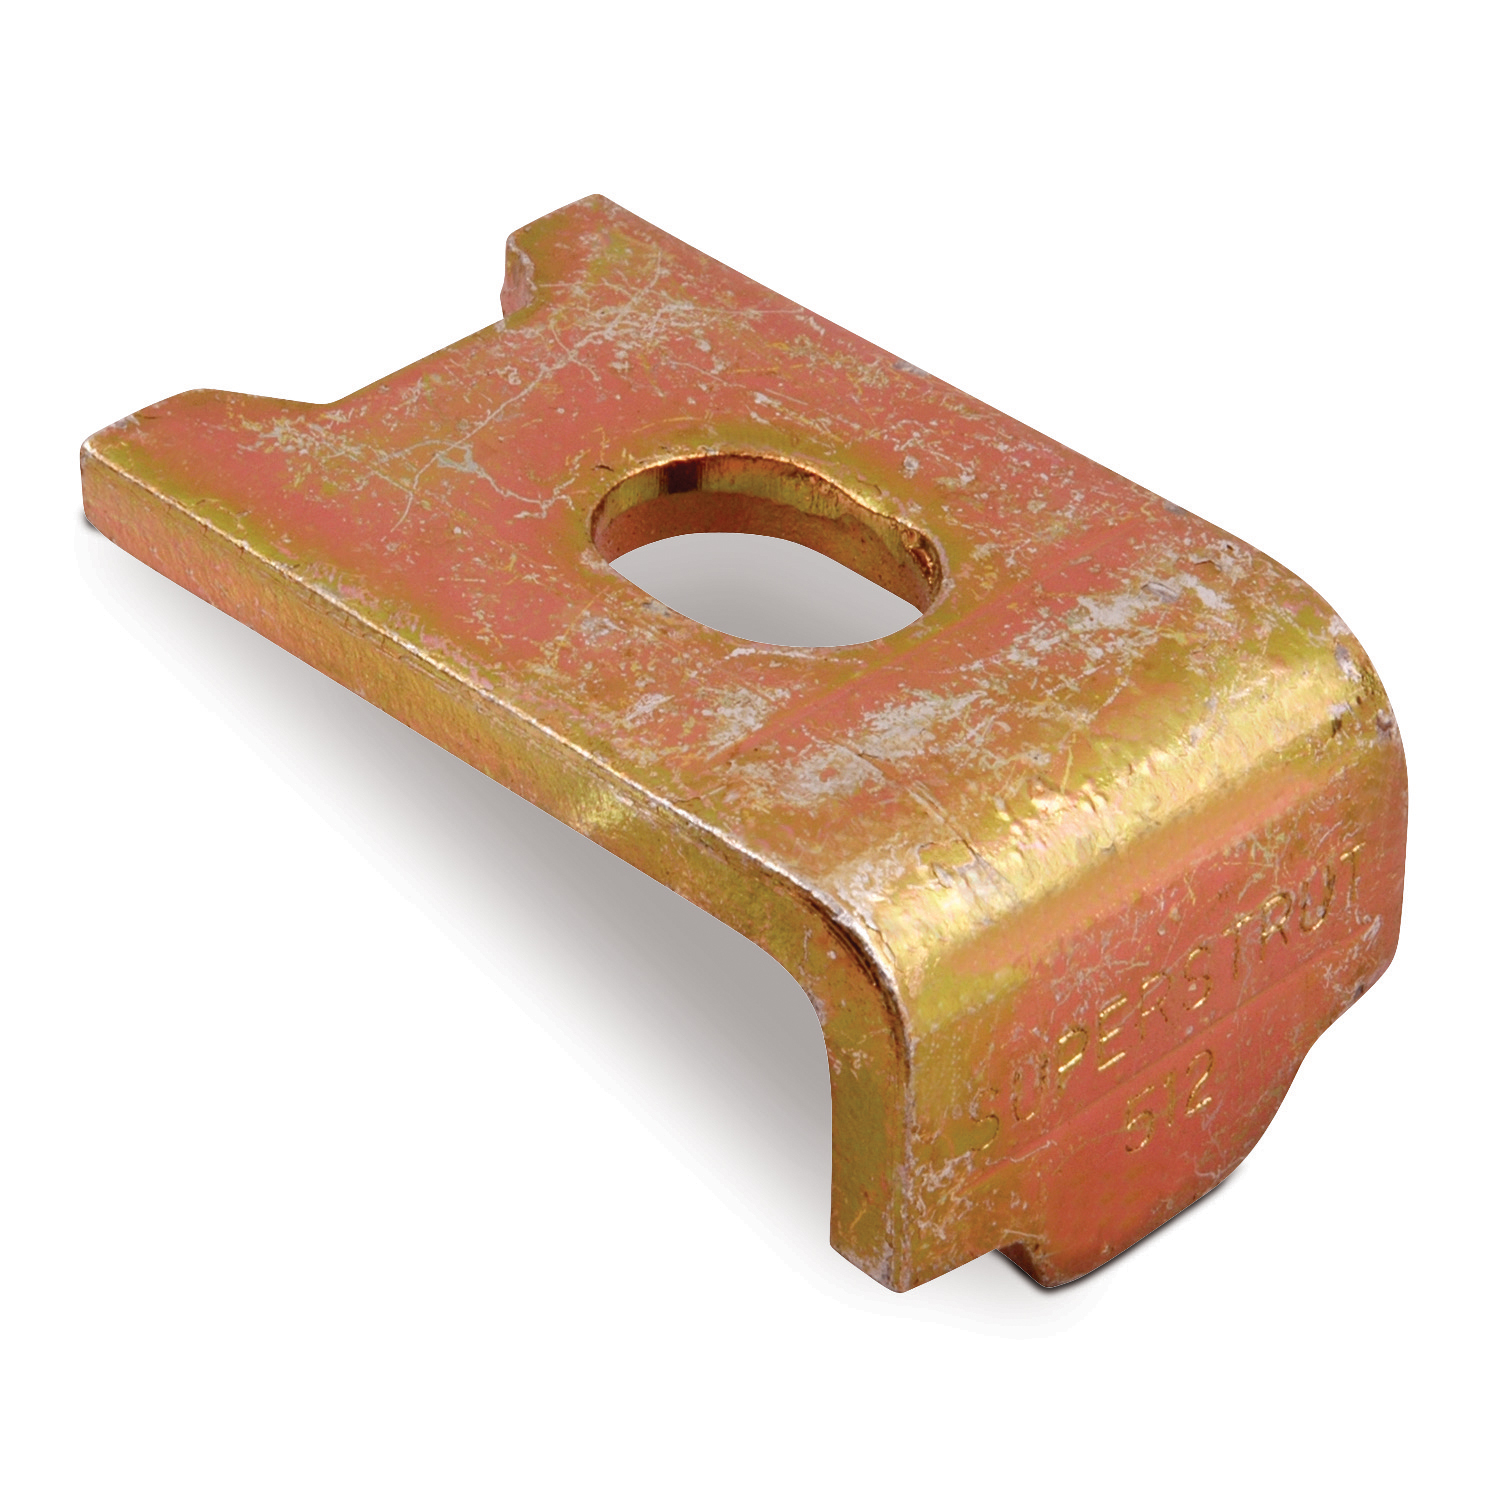 S-STRUT 512-U Beam CLAMP